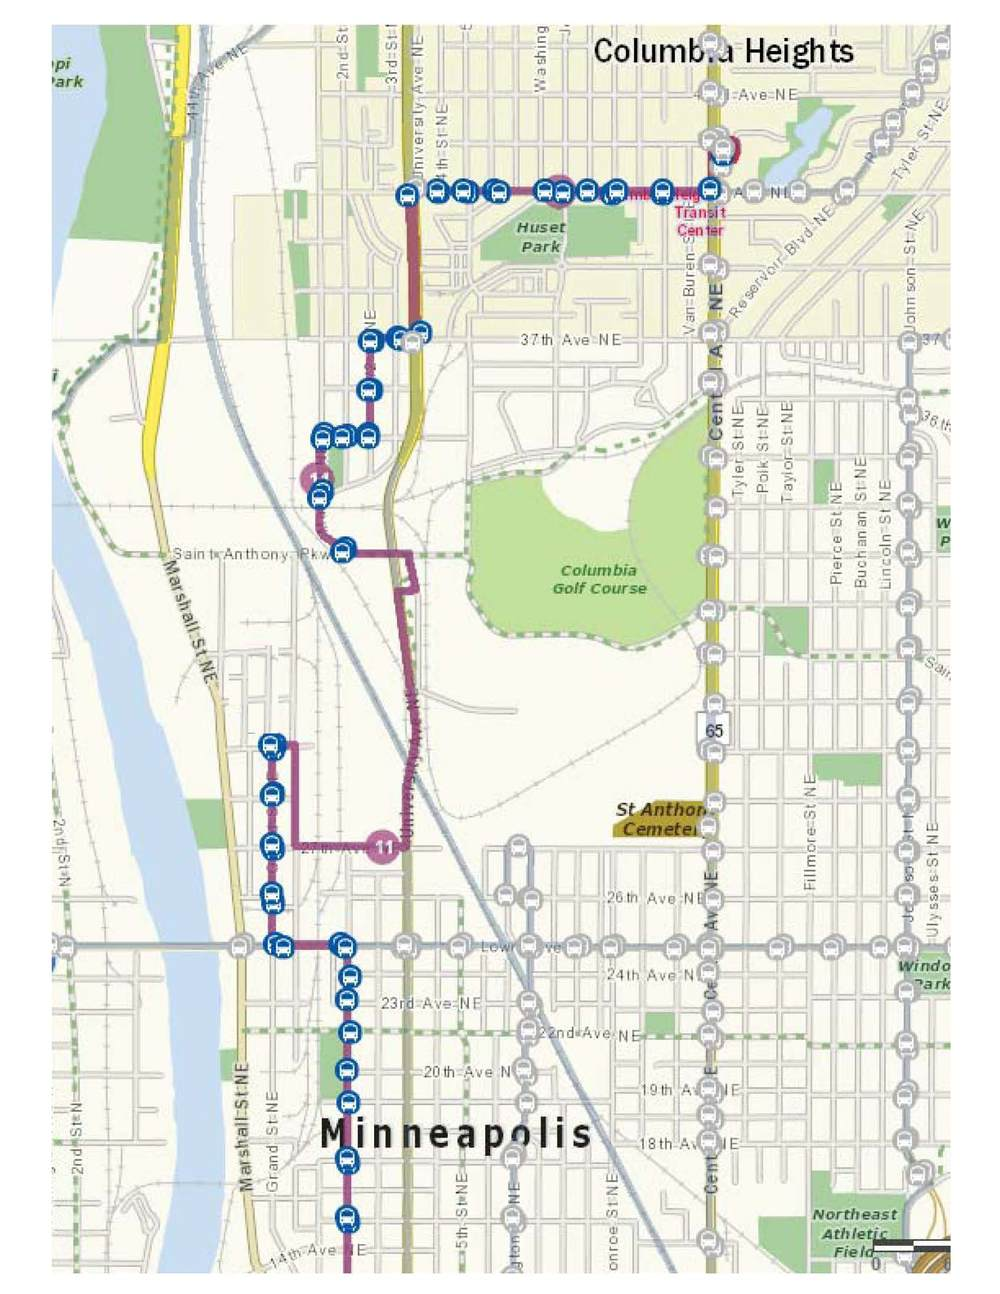 The local bus route is currently detoured around the bridge. The bus will be re-routed back over the St. Anthony Northtown bridge after construction is complete.